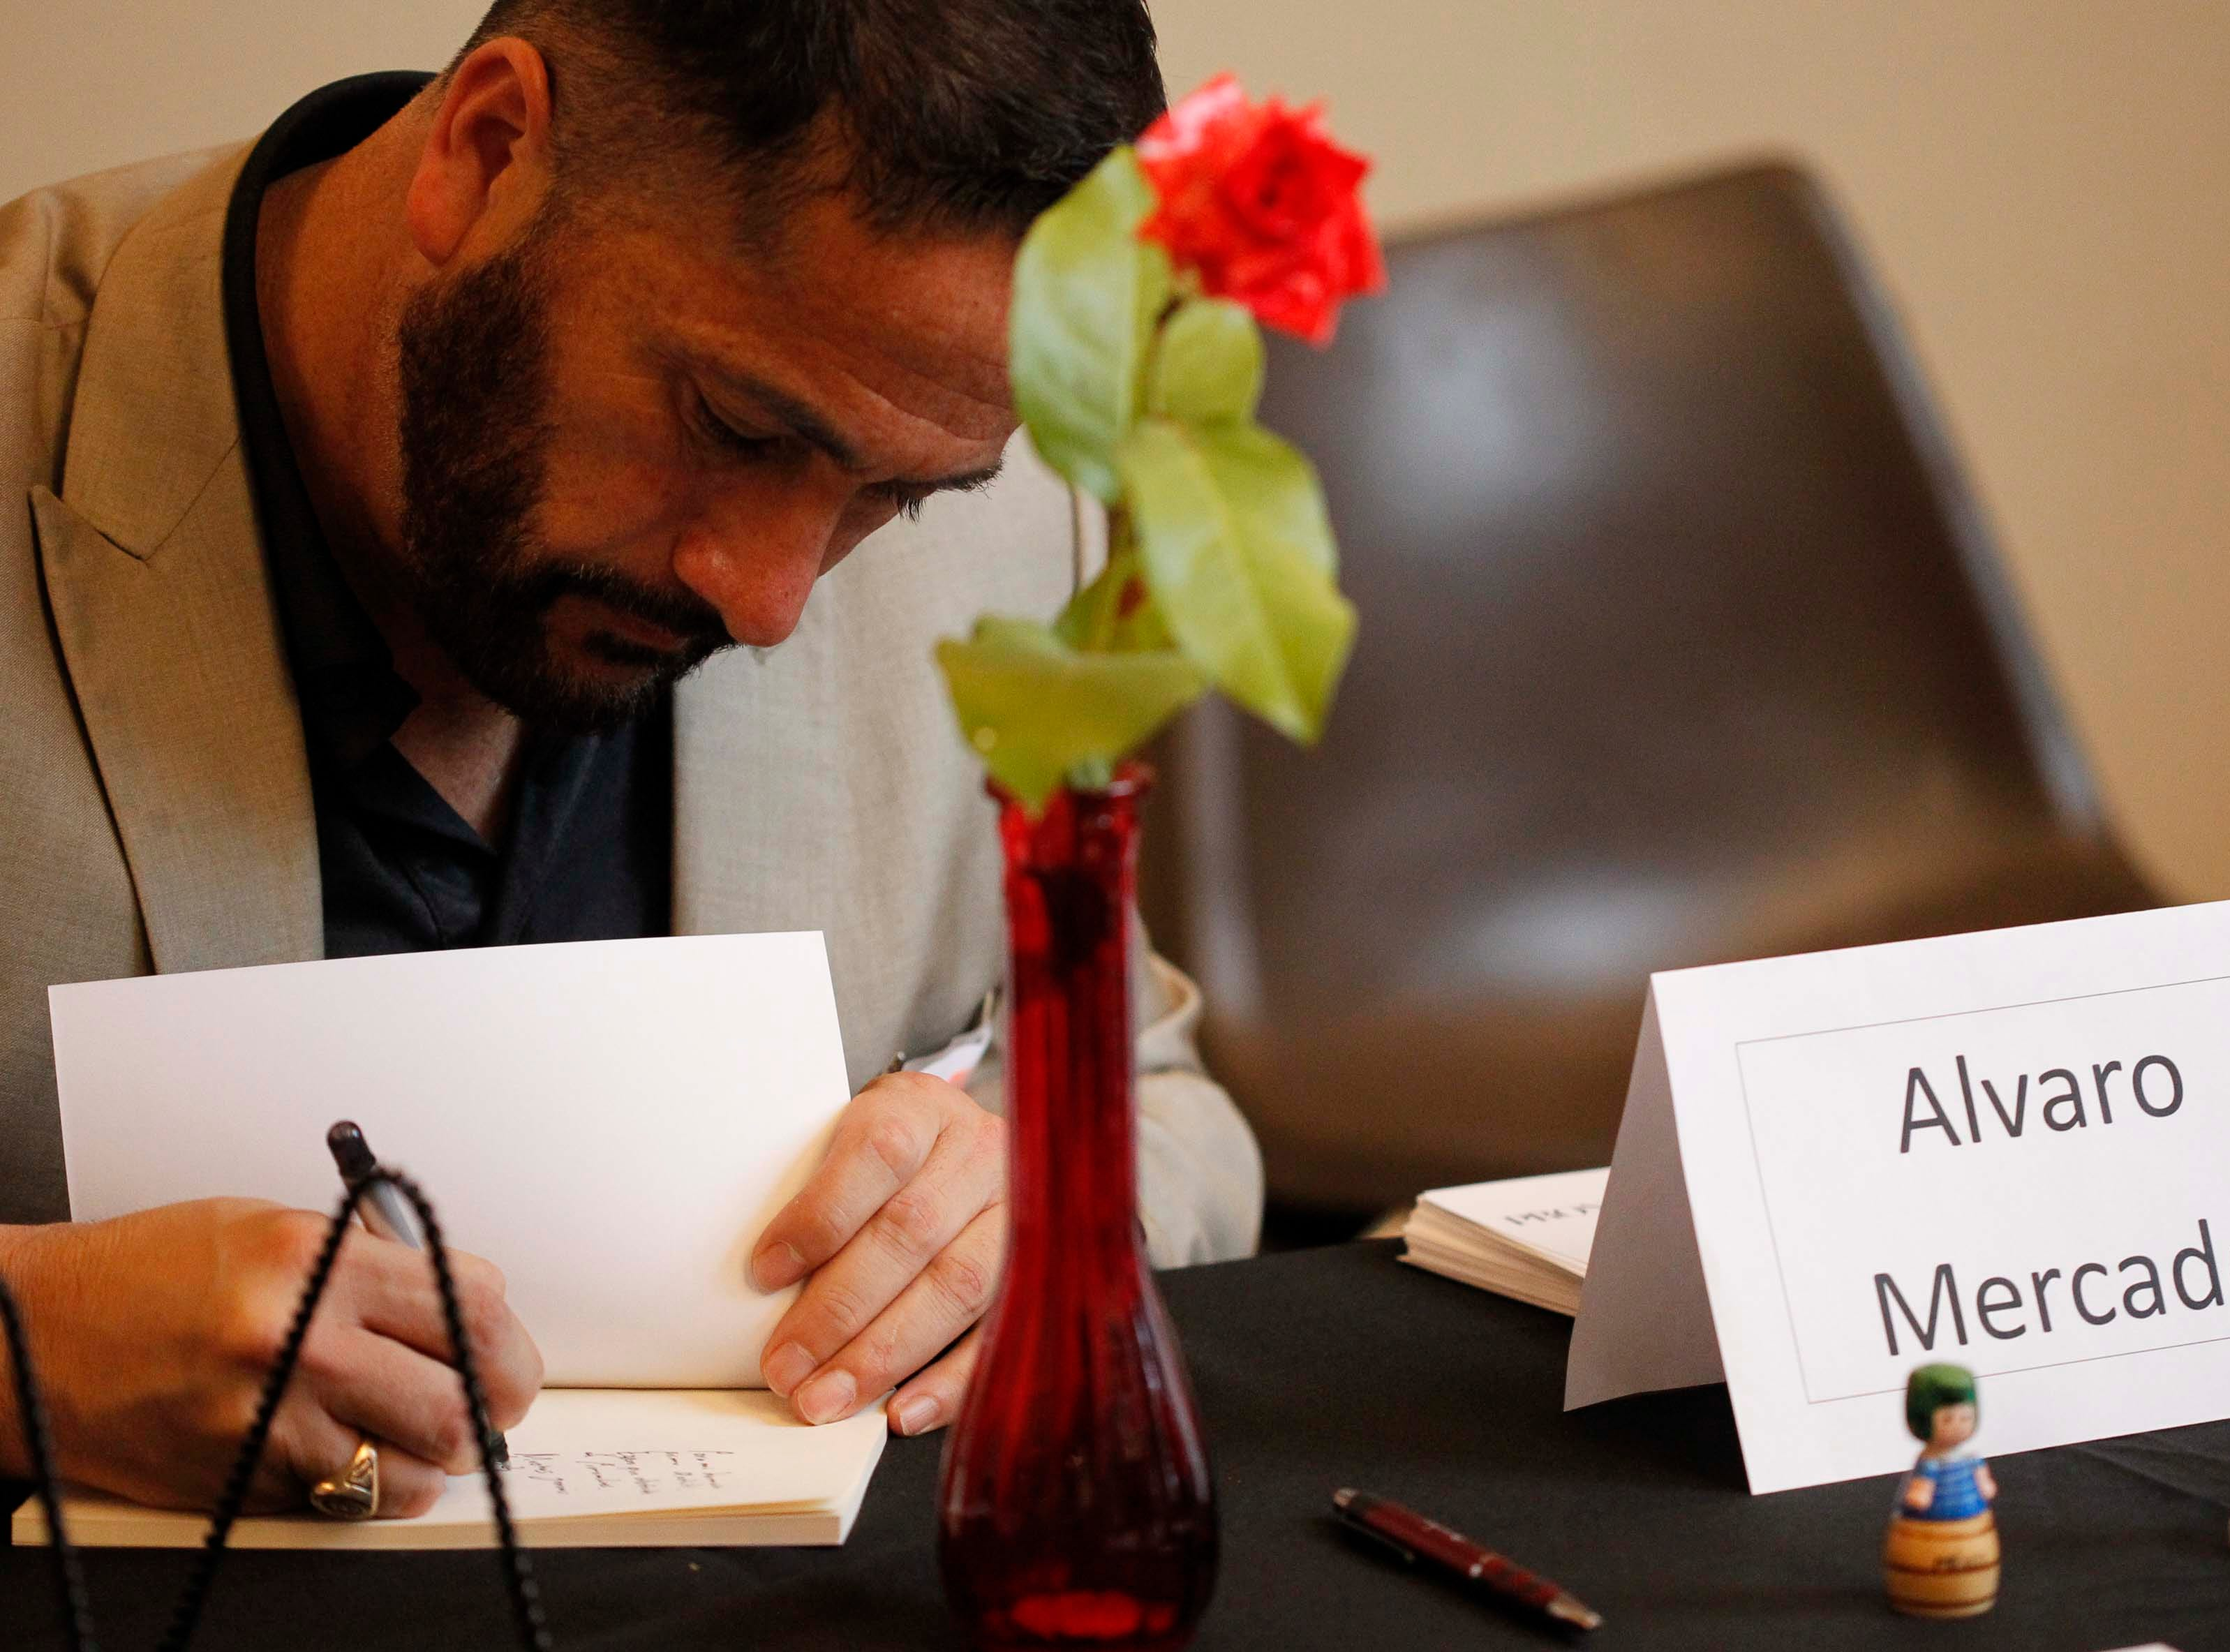 Author Alvaro Mercado of Salinas autographs a book for an attendee during the 12th annual Noche Bohemia at Sherwood Hall on Saturday, April 27, 2019 in Salinas, Calif.